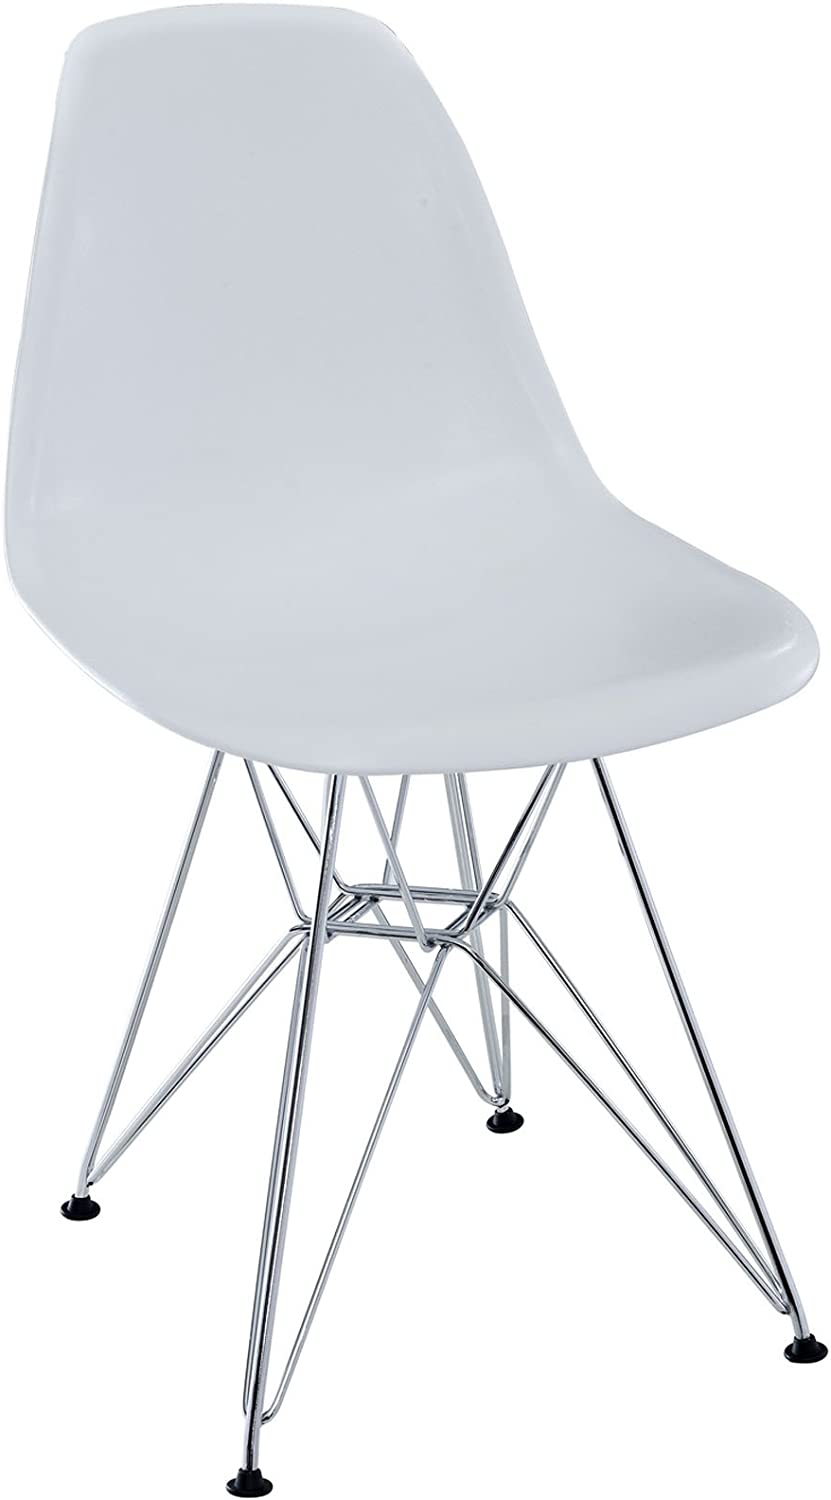 Lexington Modern MO-EEI-179-WHI Paris Mid-Century Modern Molded Plastic with Steel Metal Base, One Dining Chair, White